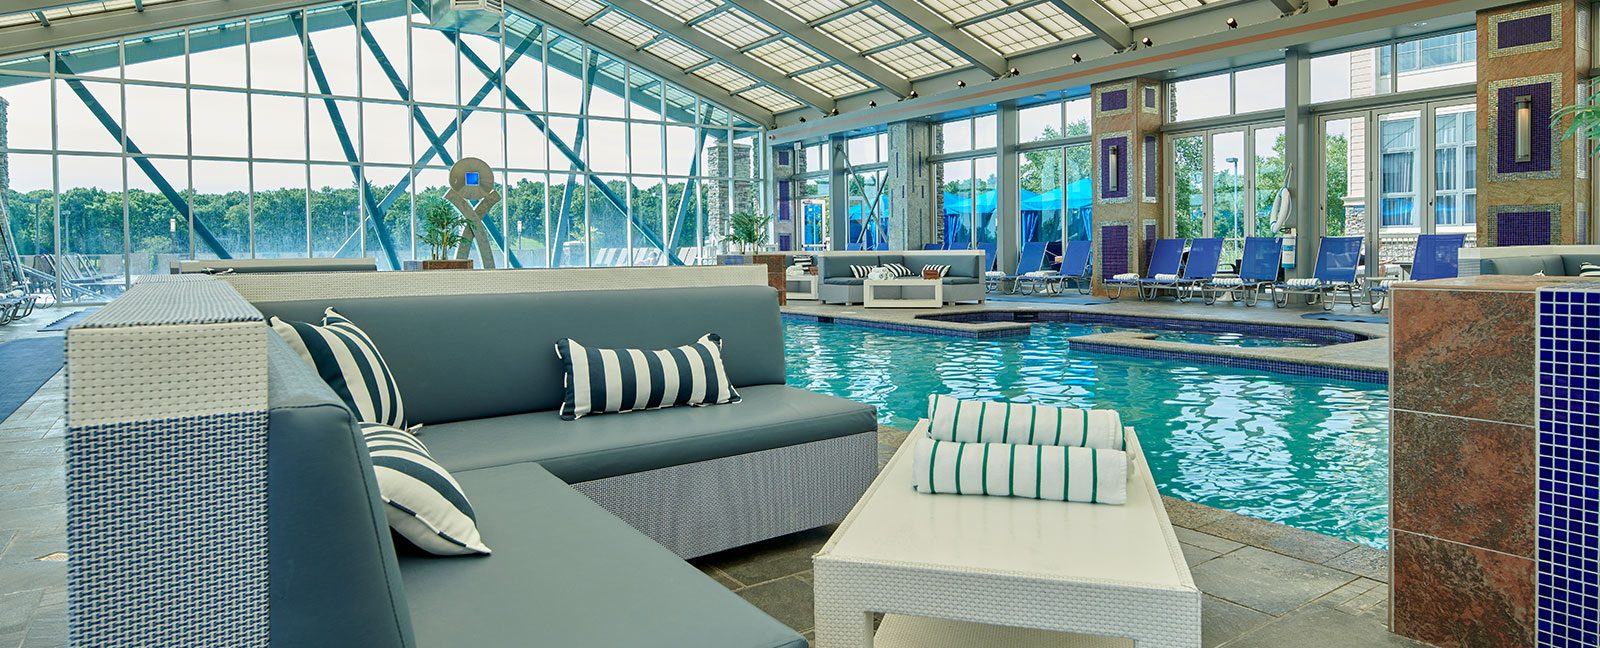 indoor pool, daybeds